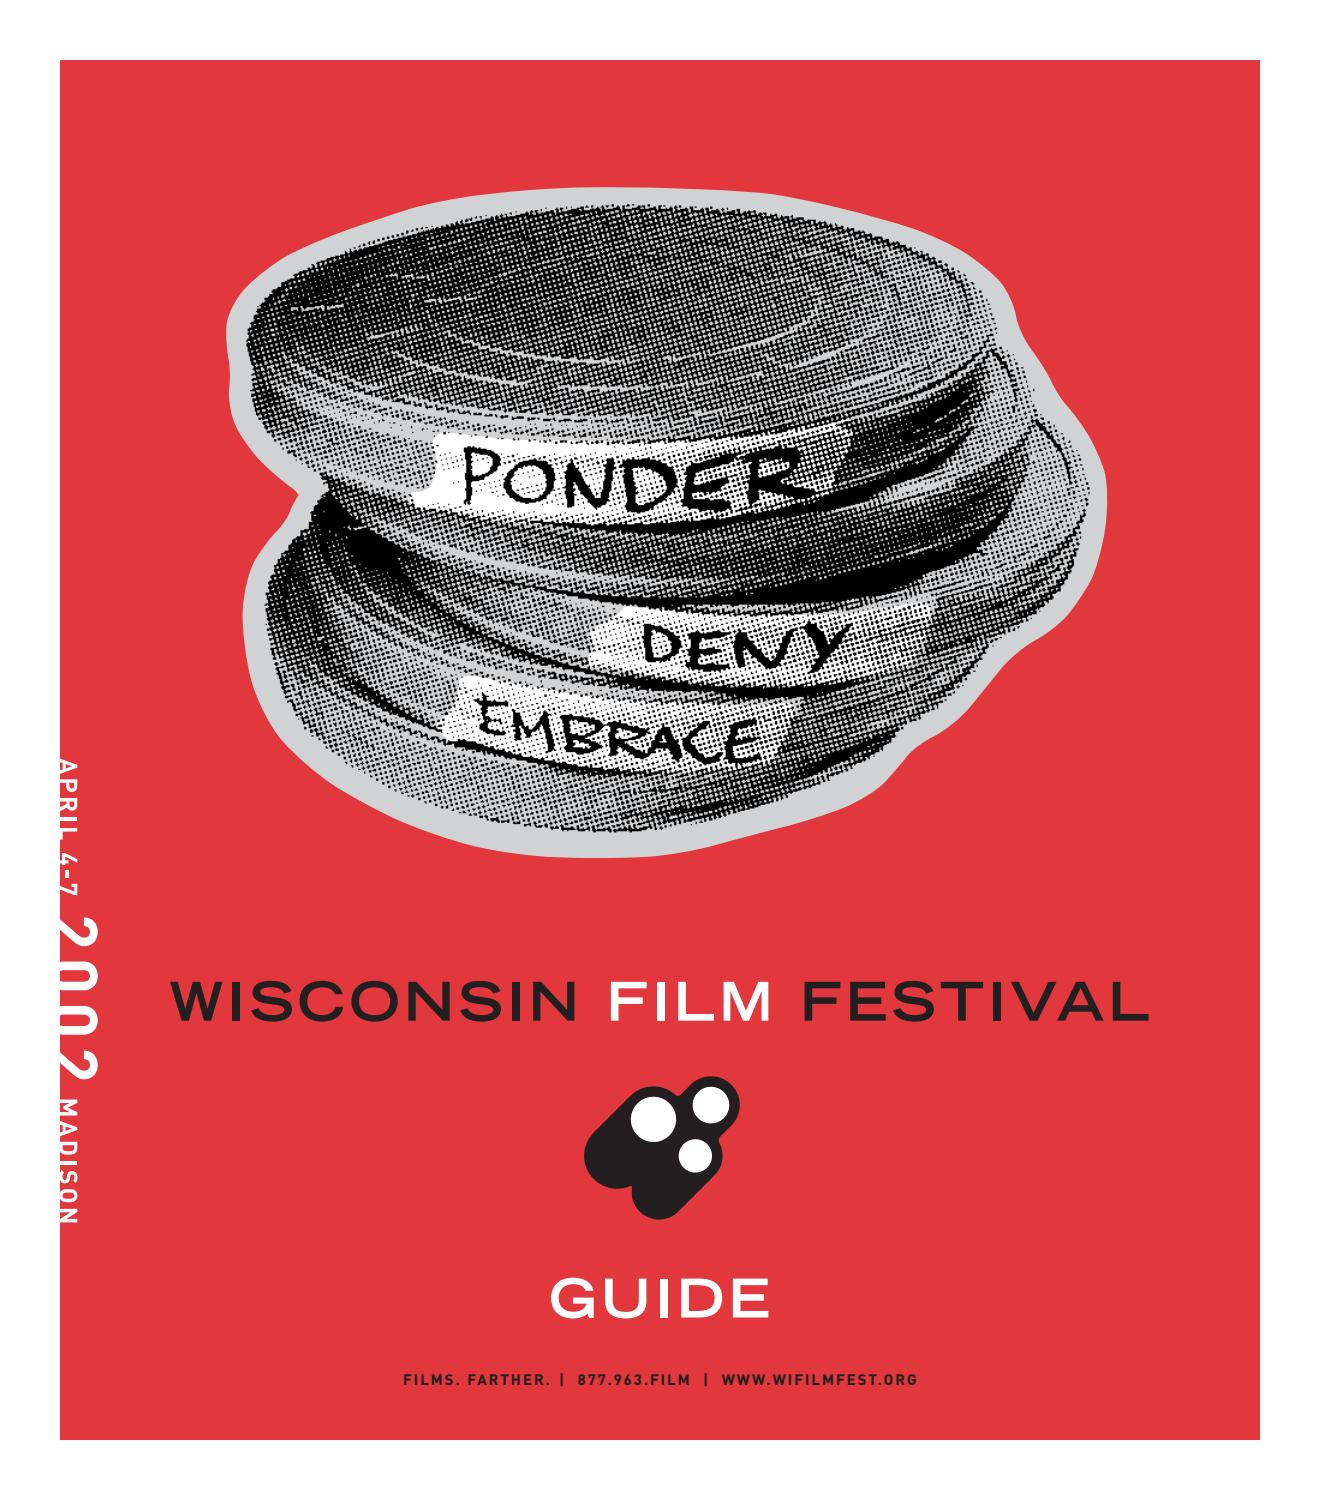 b125197a04 2002 Wisconsin Film Festival Film Guide by UW-Madison Division of the Arts  - issuu